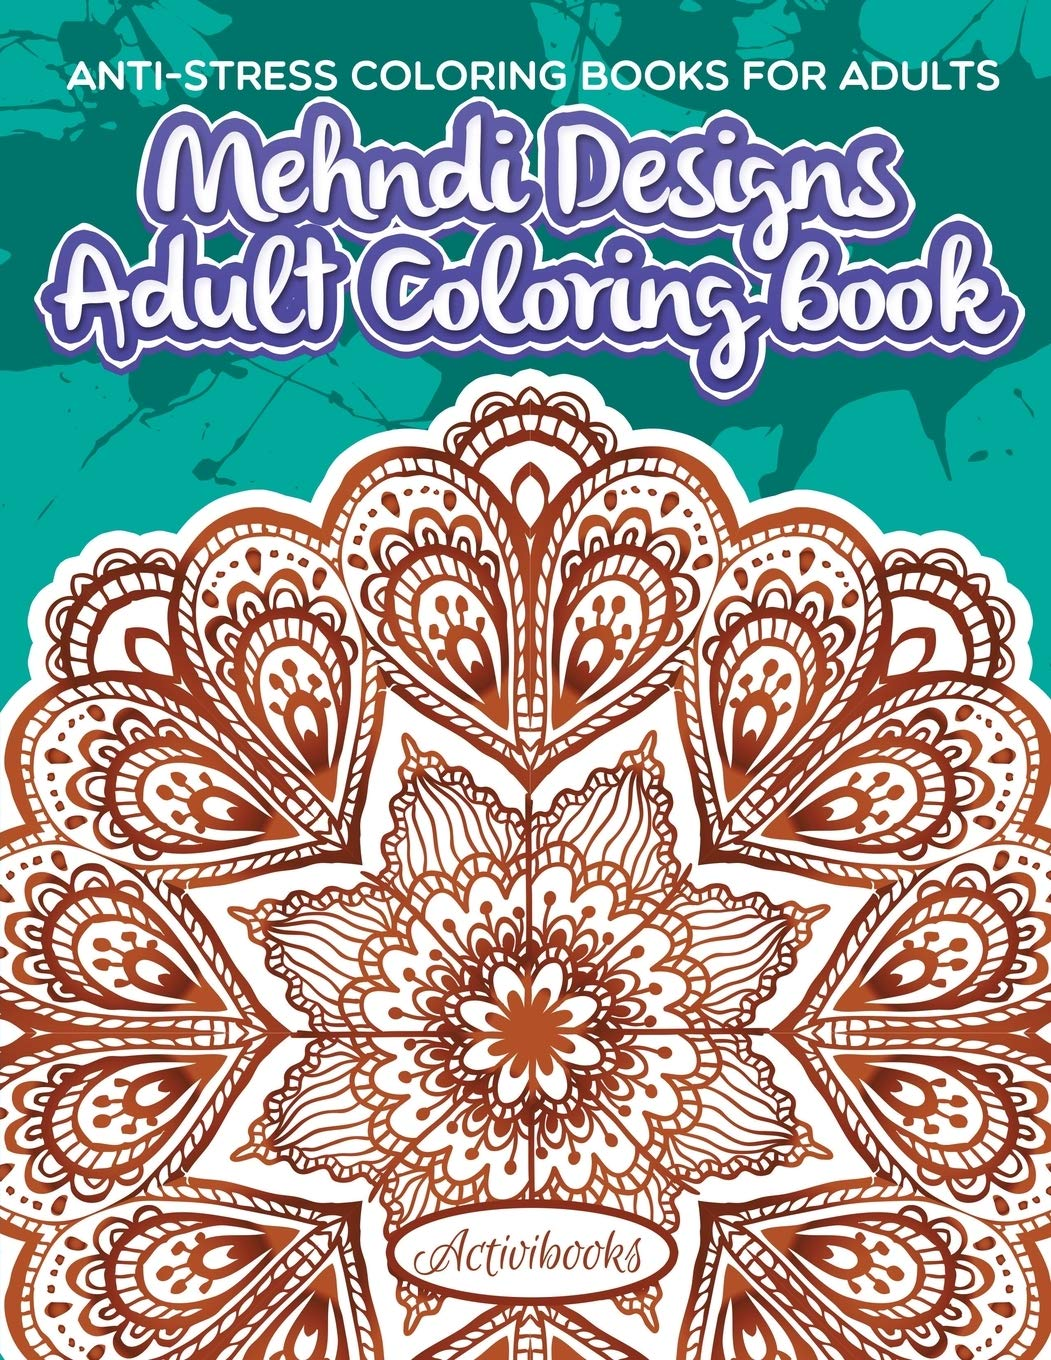 - Mehndi Designs Adult Coloring Book: Anti-Stress Coloring Books For